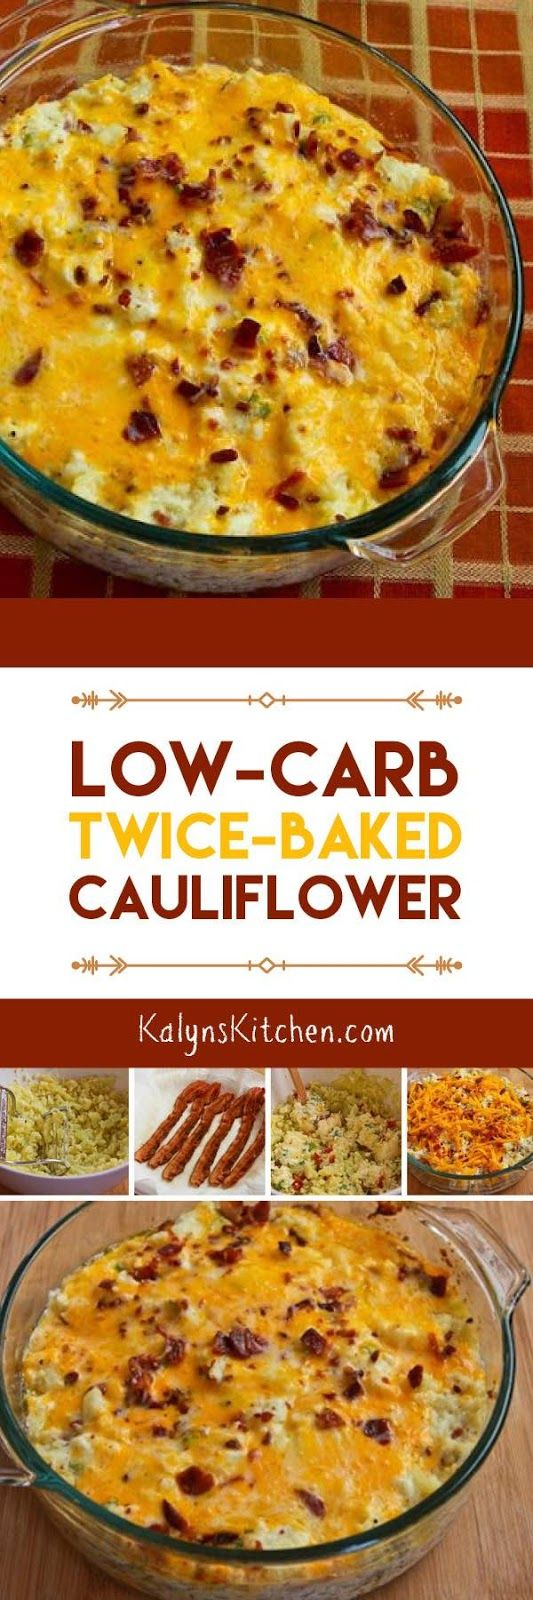 Low-Carb Twice-Baked Cauliflower For vegetarians good with quorn bacon bits